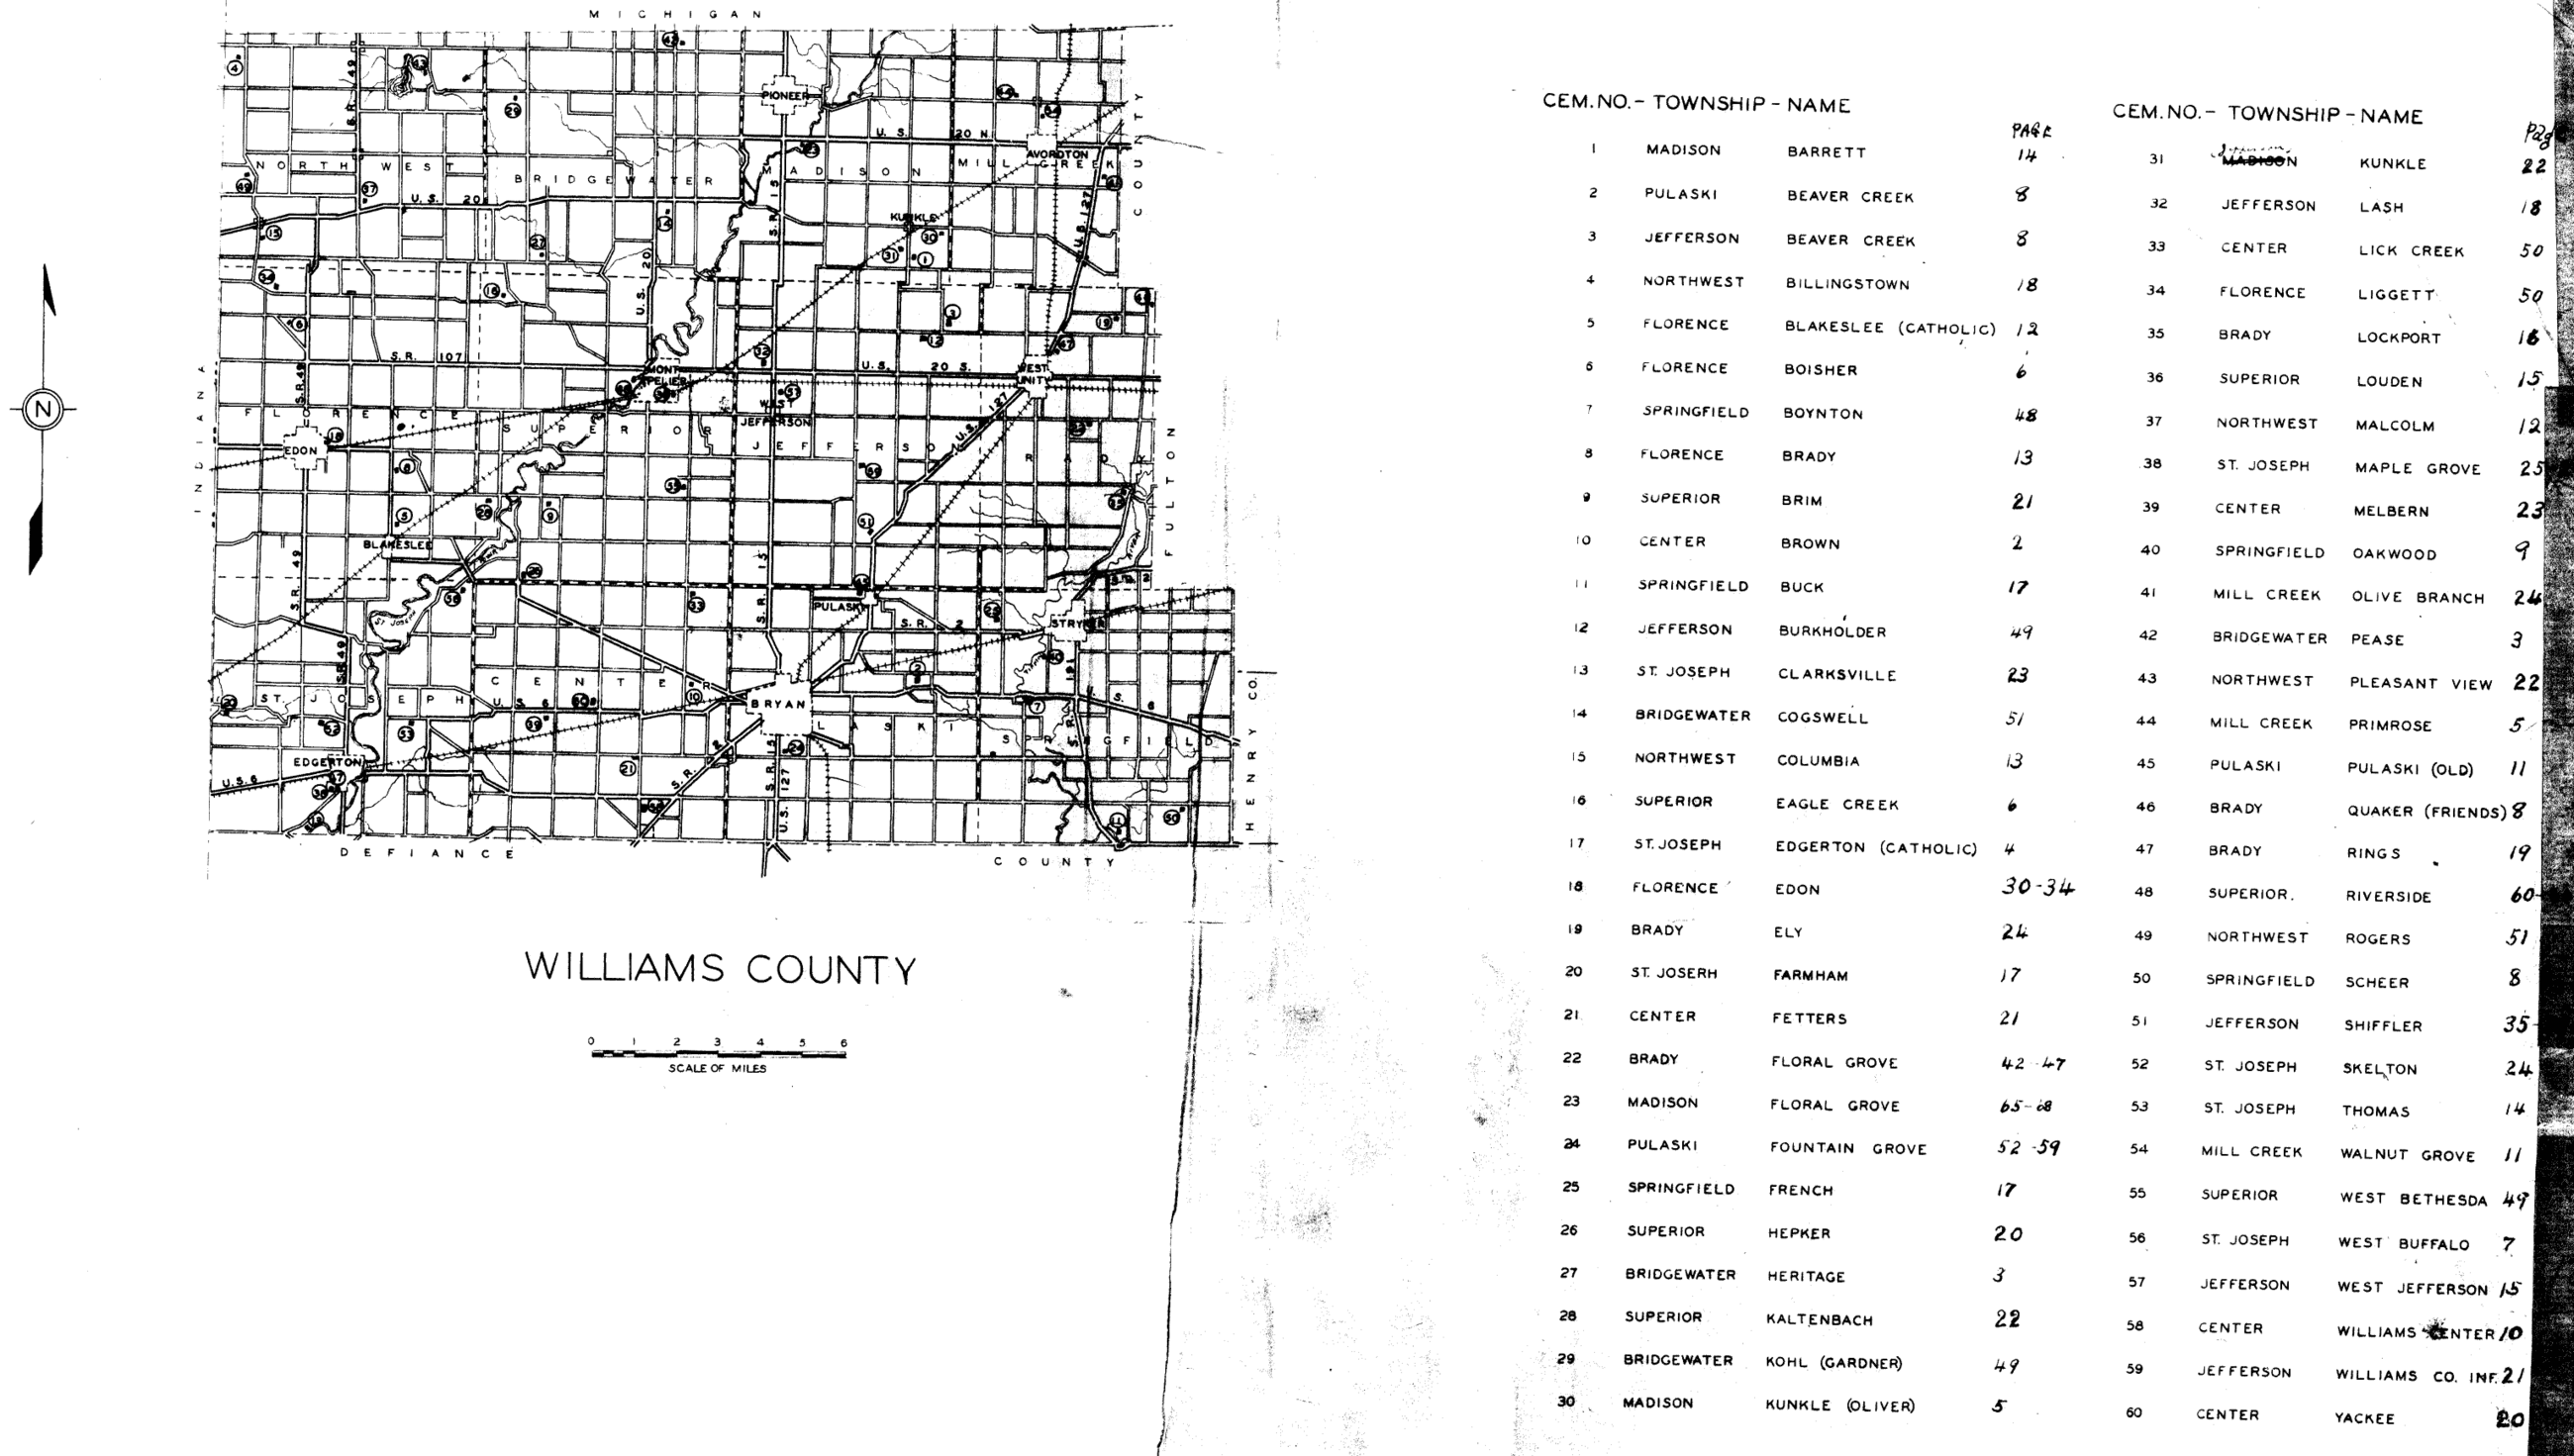 Williams County Township Names